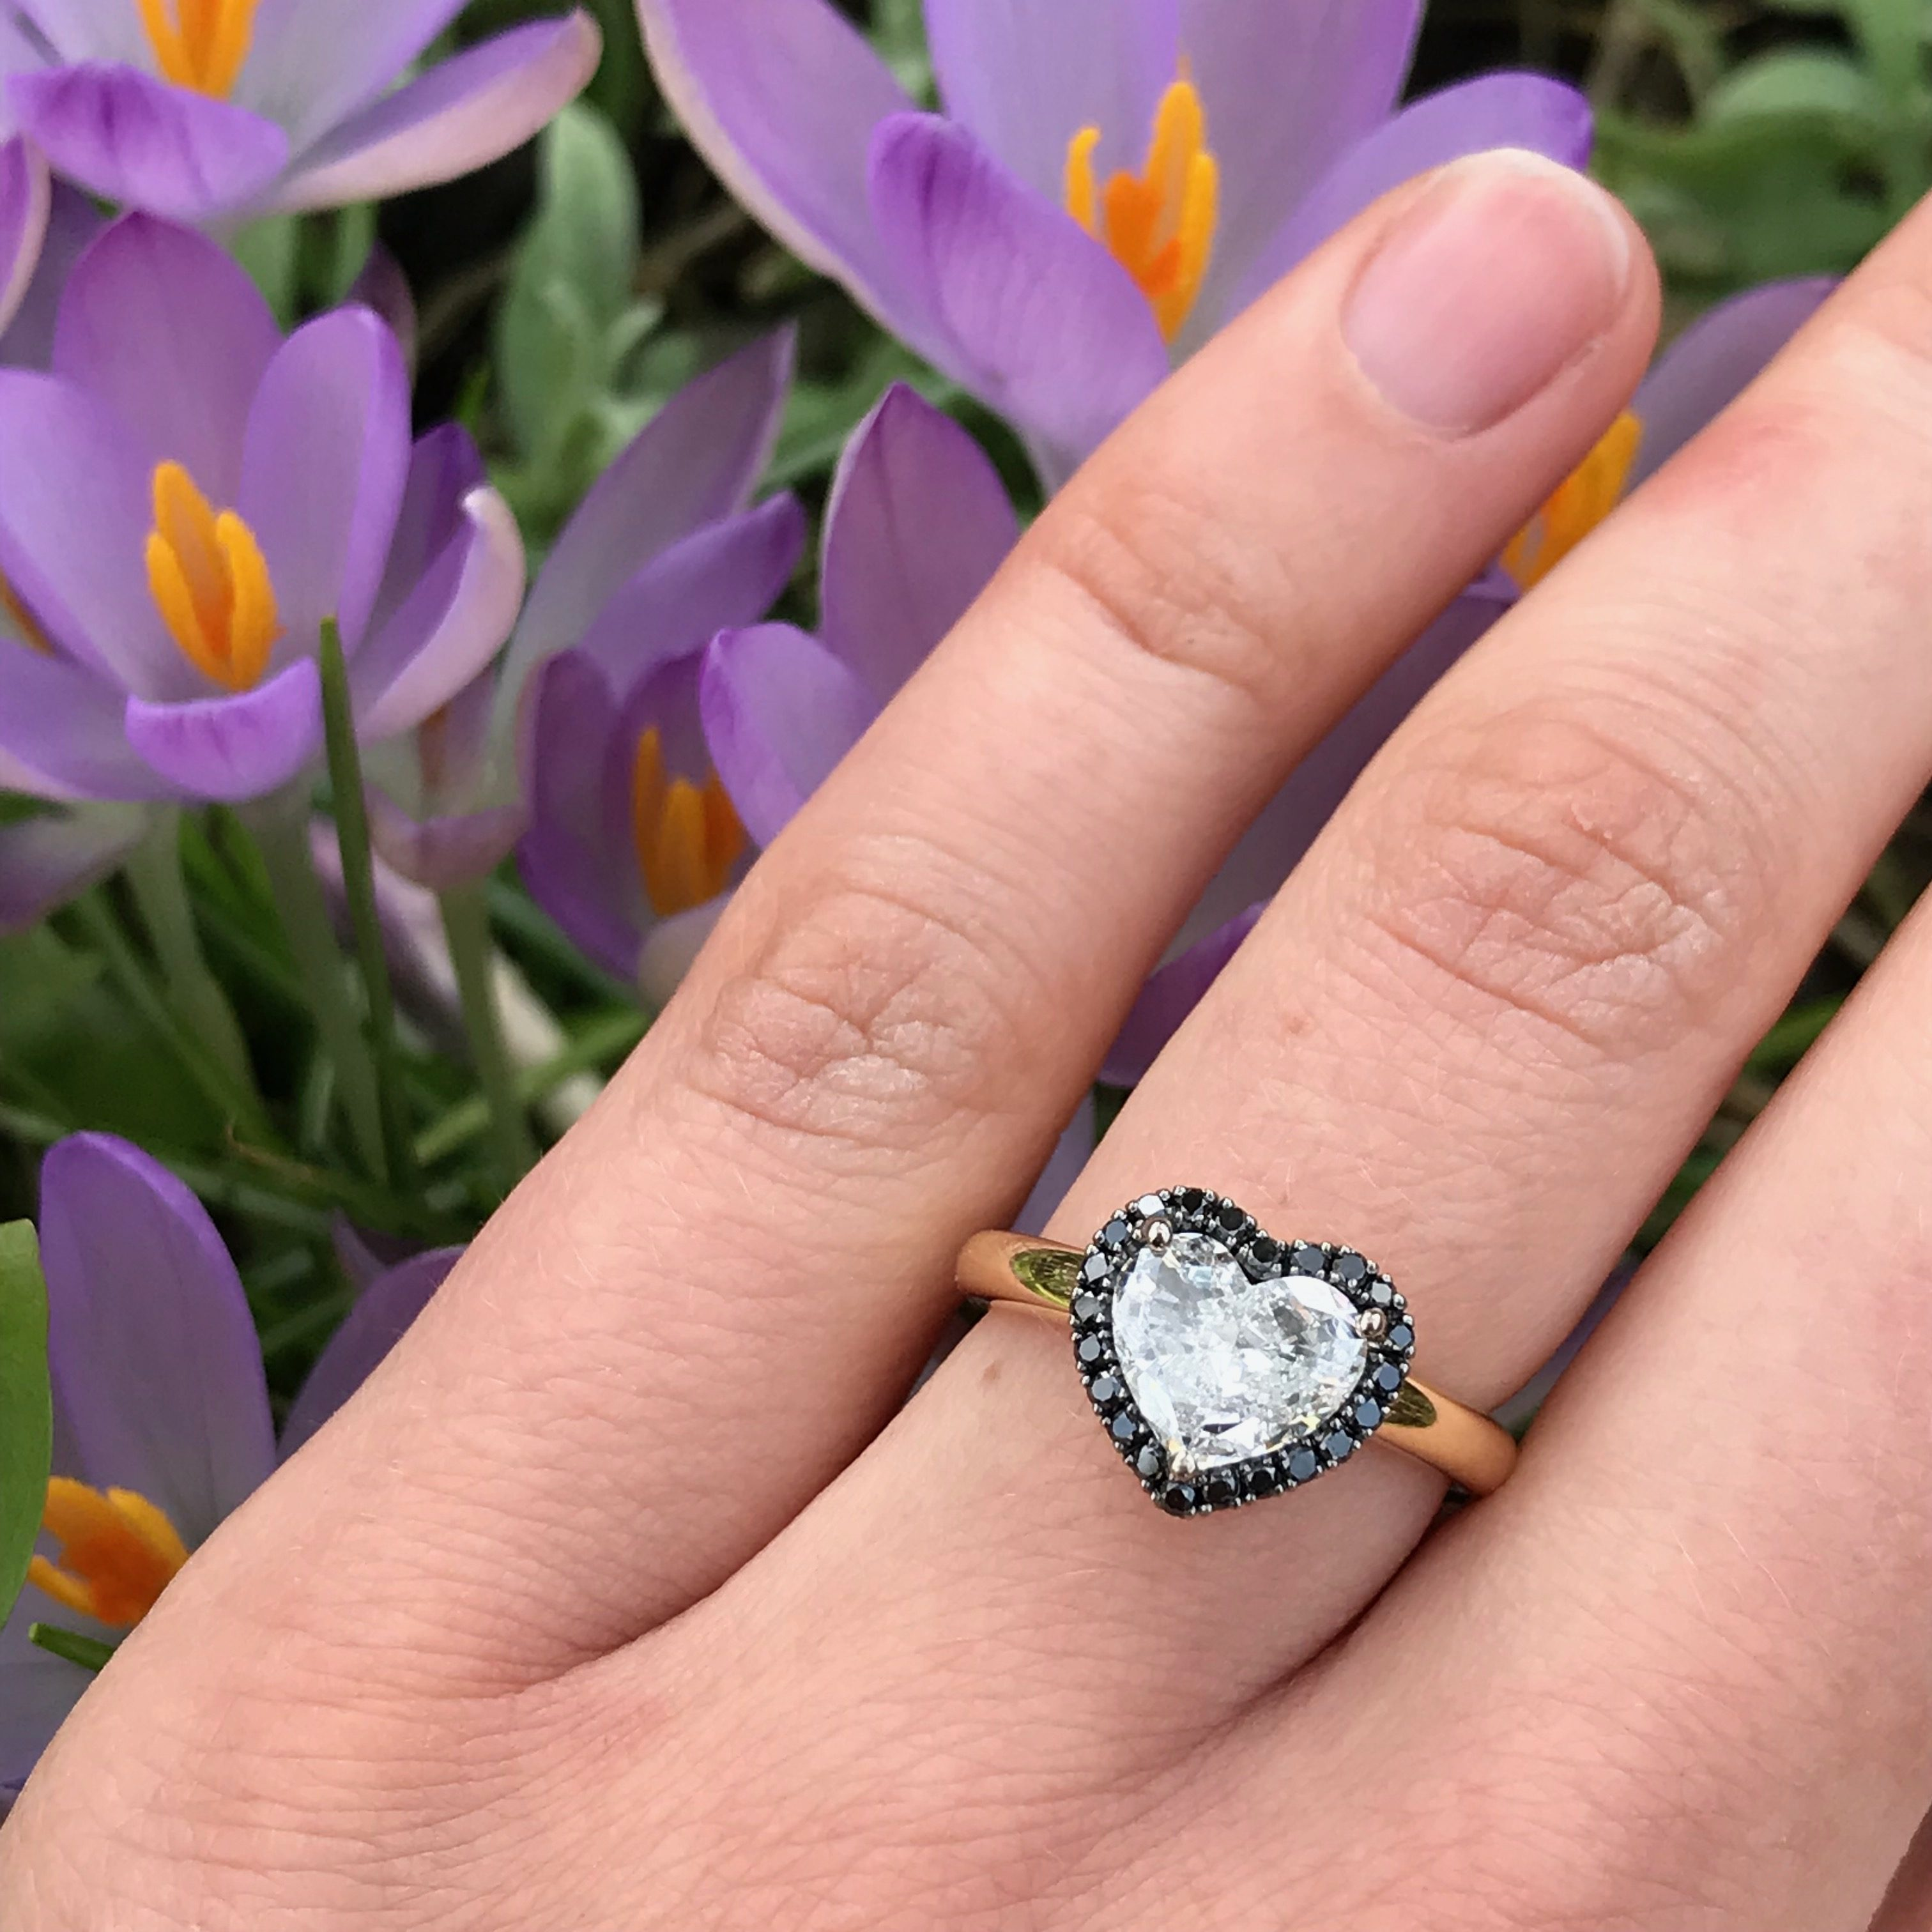 18ct yellow gold and 1 26ct heart shaped diamond Limited Edition engagement  ring with black diamond halo